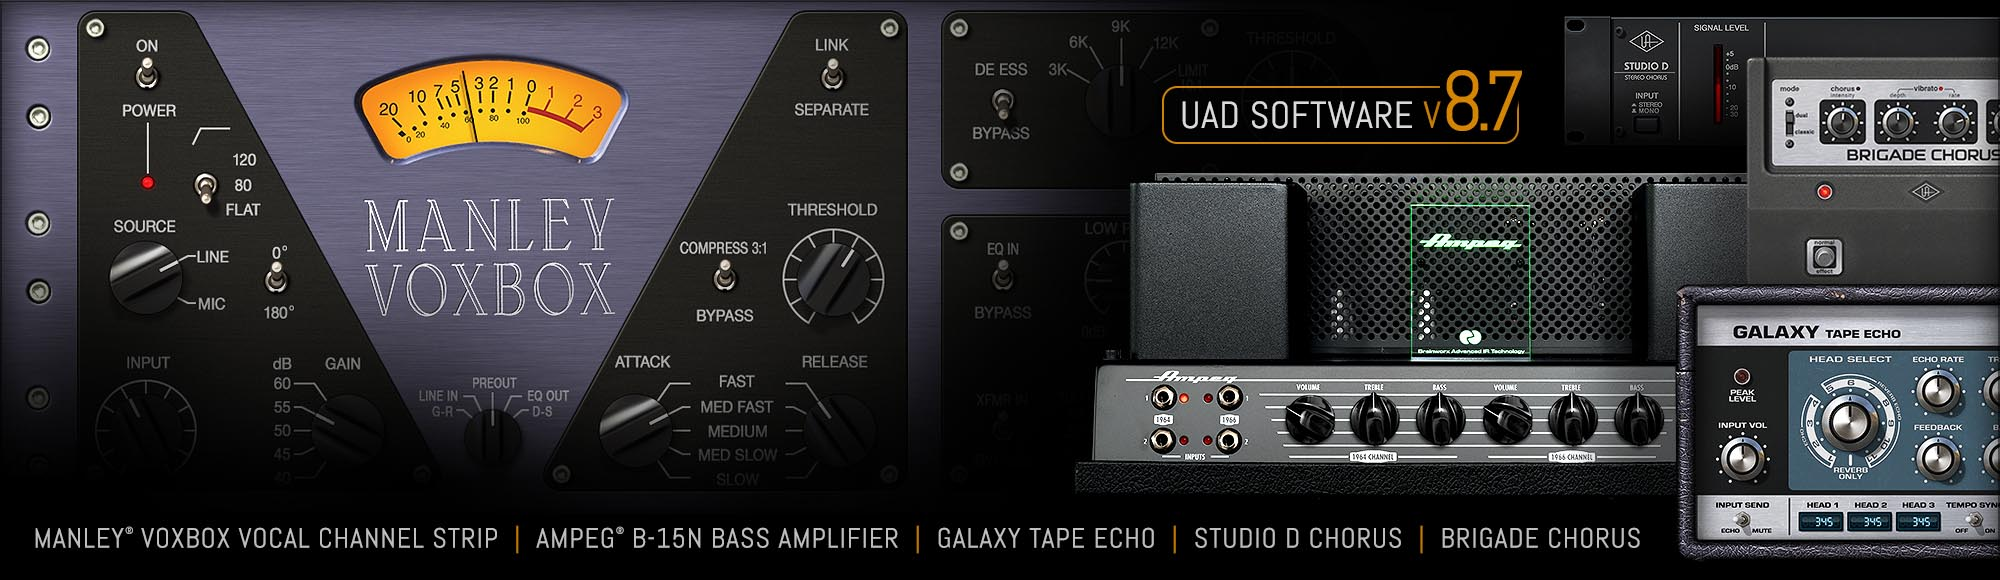 v8.7 UAD Software